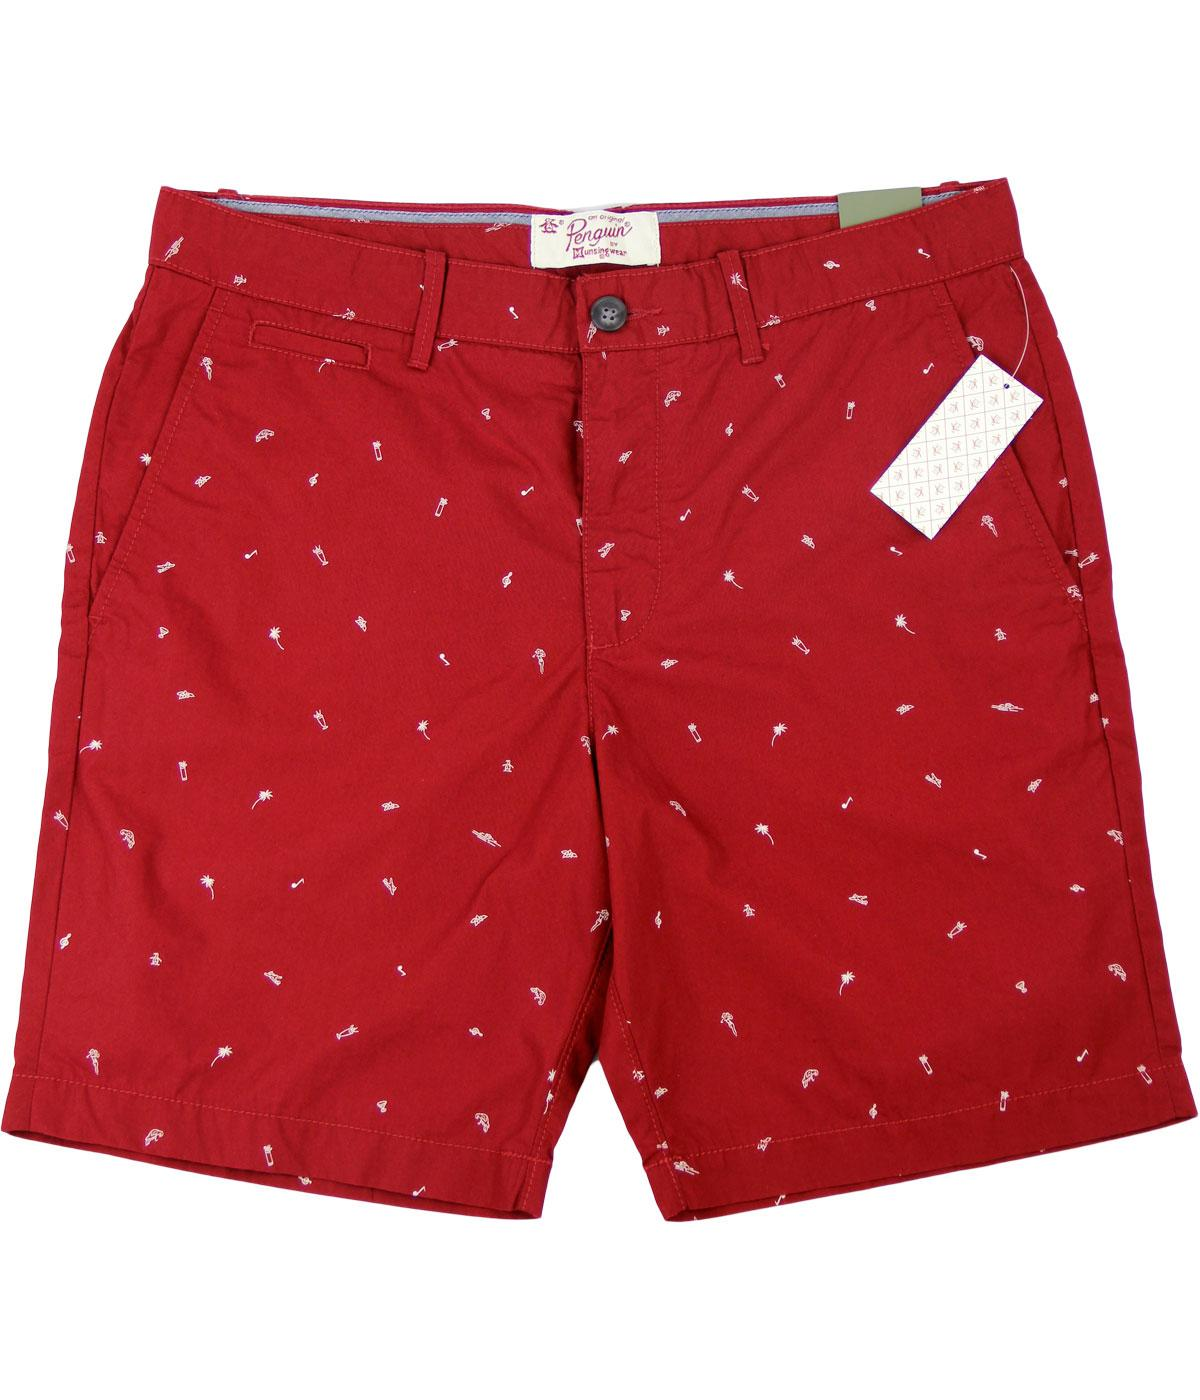 Budge ORIGINAL PENGUIN Retro Summer Print Shorts R